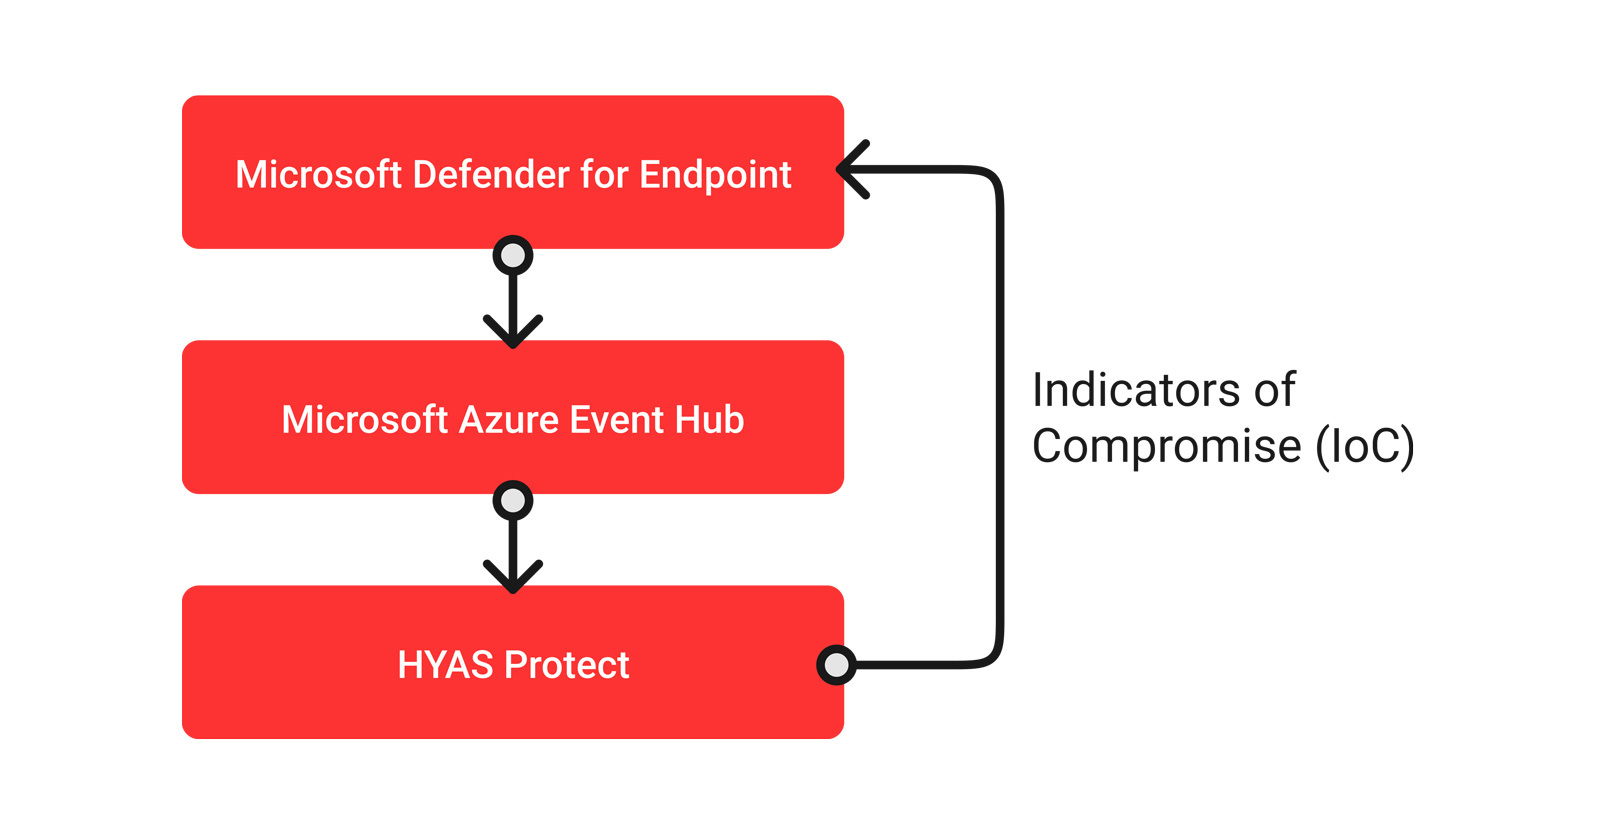 HYAS Protect Integration with Microsoft Defender for Endpoint